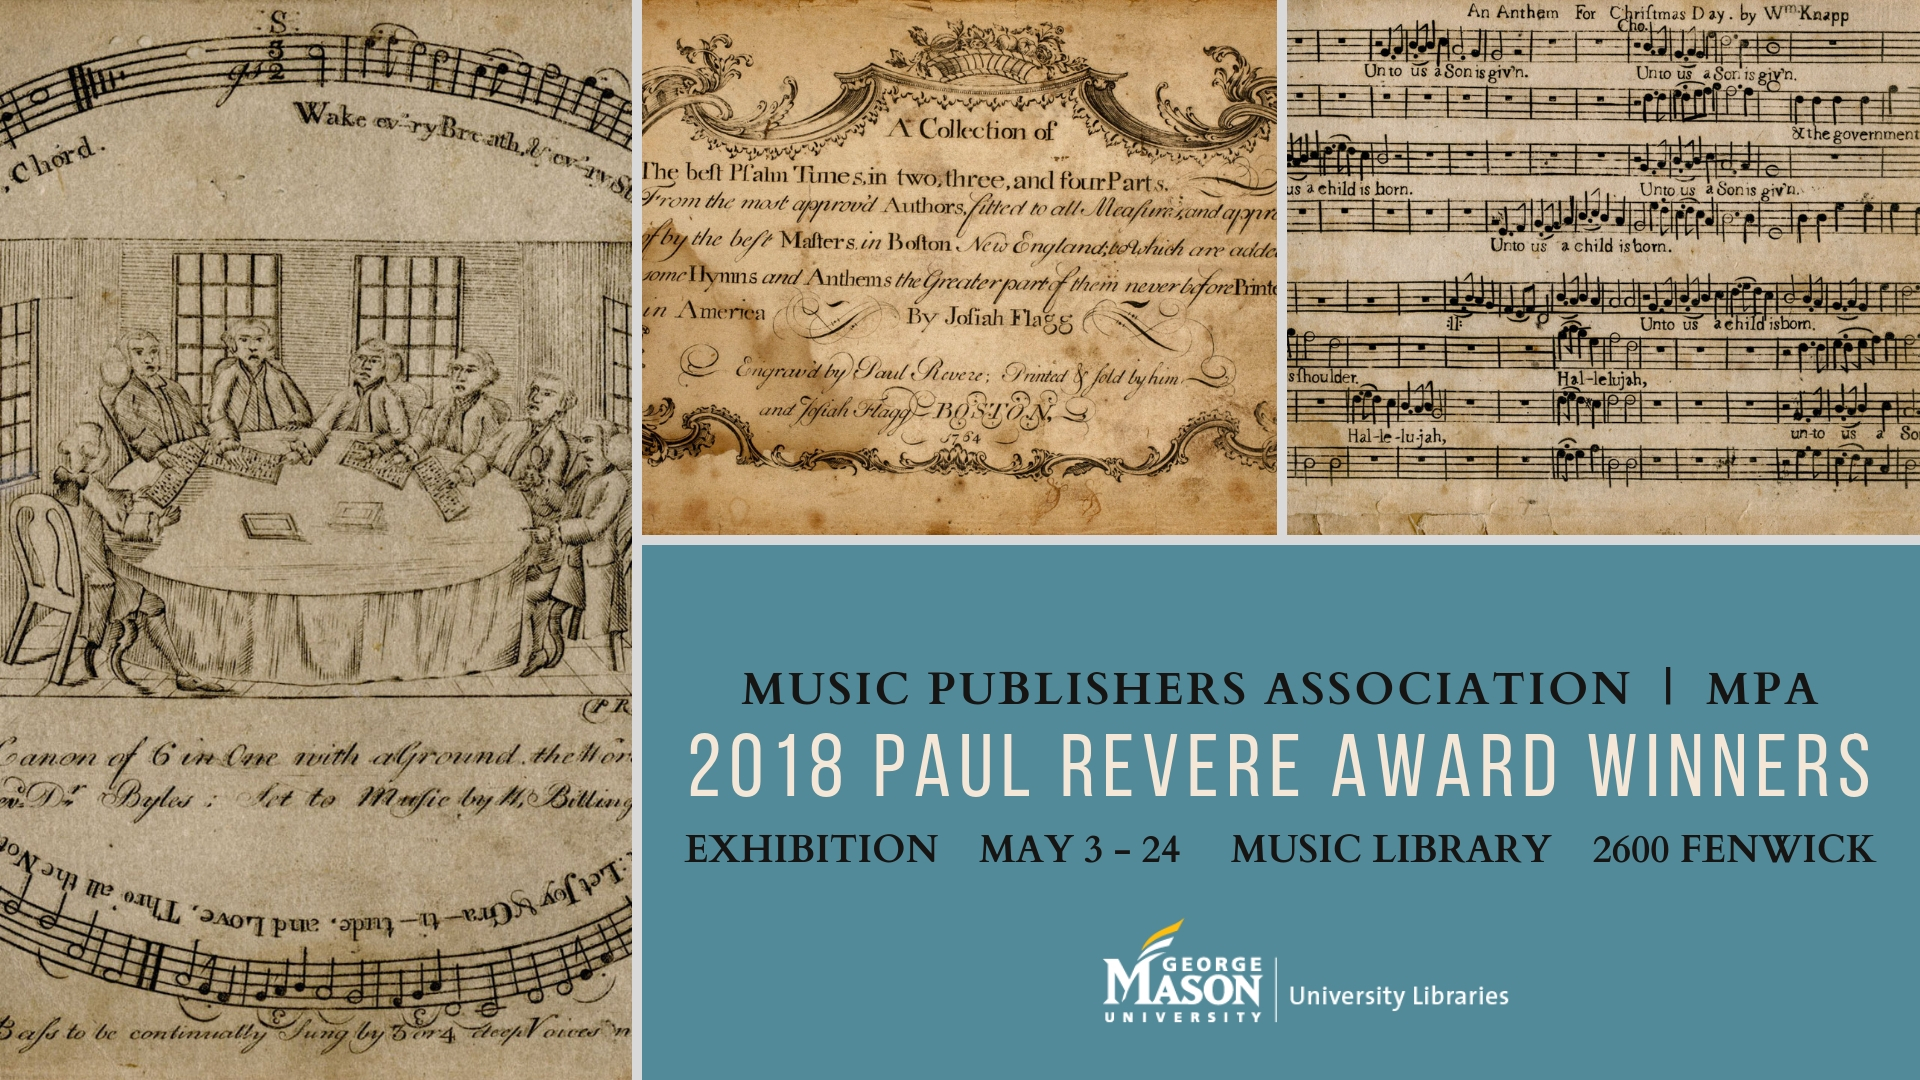 MPA award exhibit in the Music Library | News